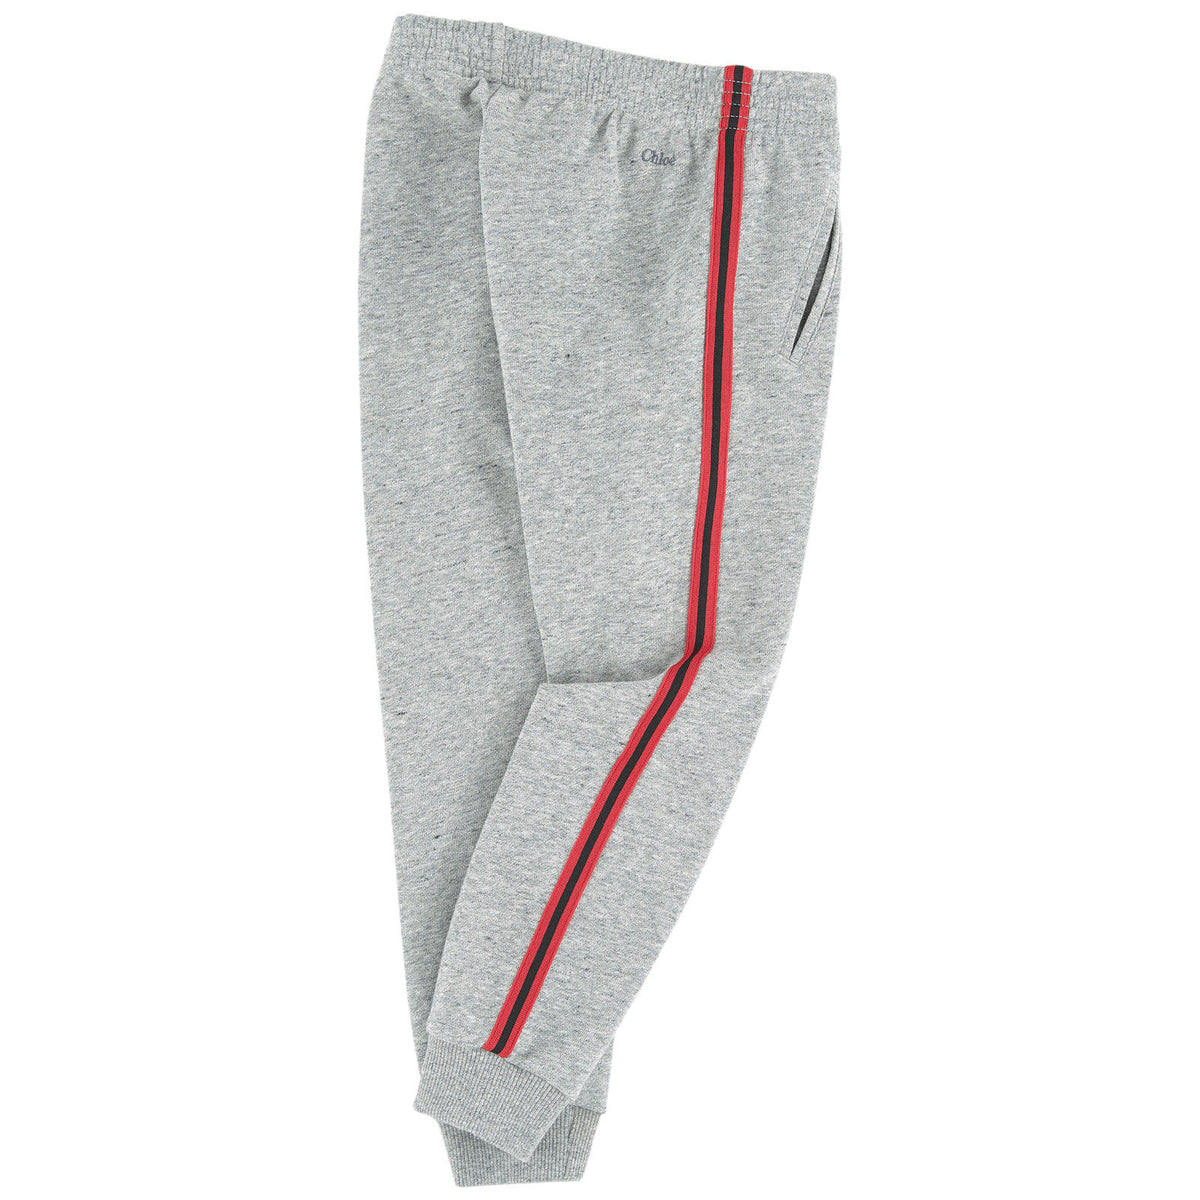 db08bf87d Chloe Girls Fancy Grey Sweatpants (Mini-Me) Girls Pants Chloé  [Petit_New_York]